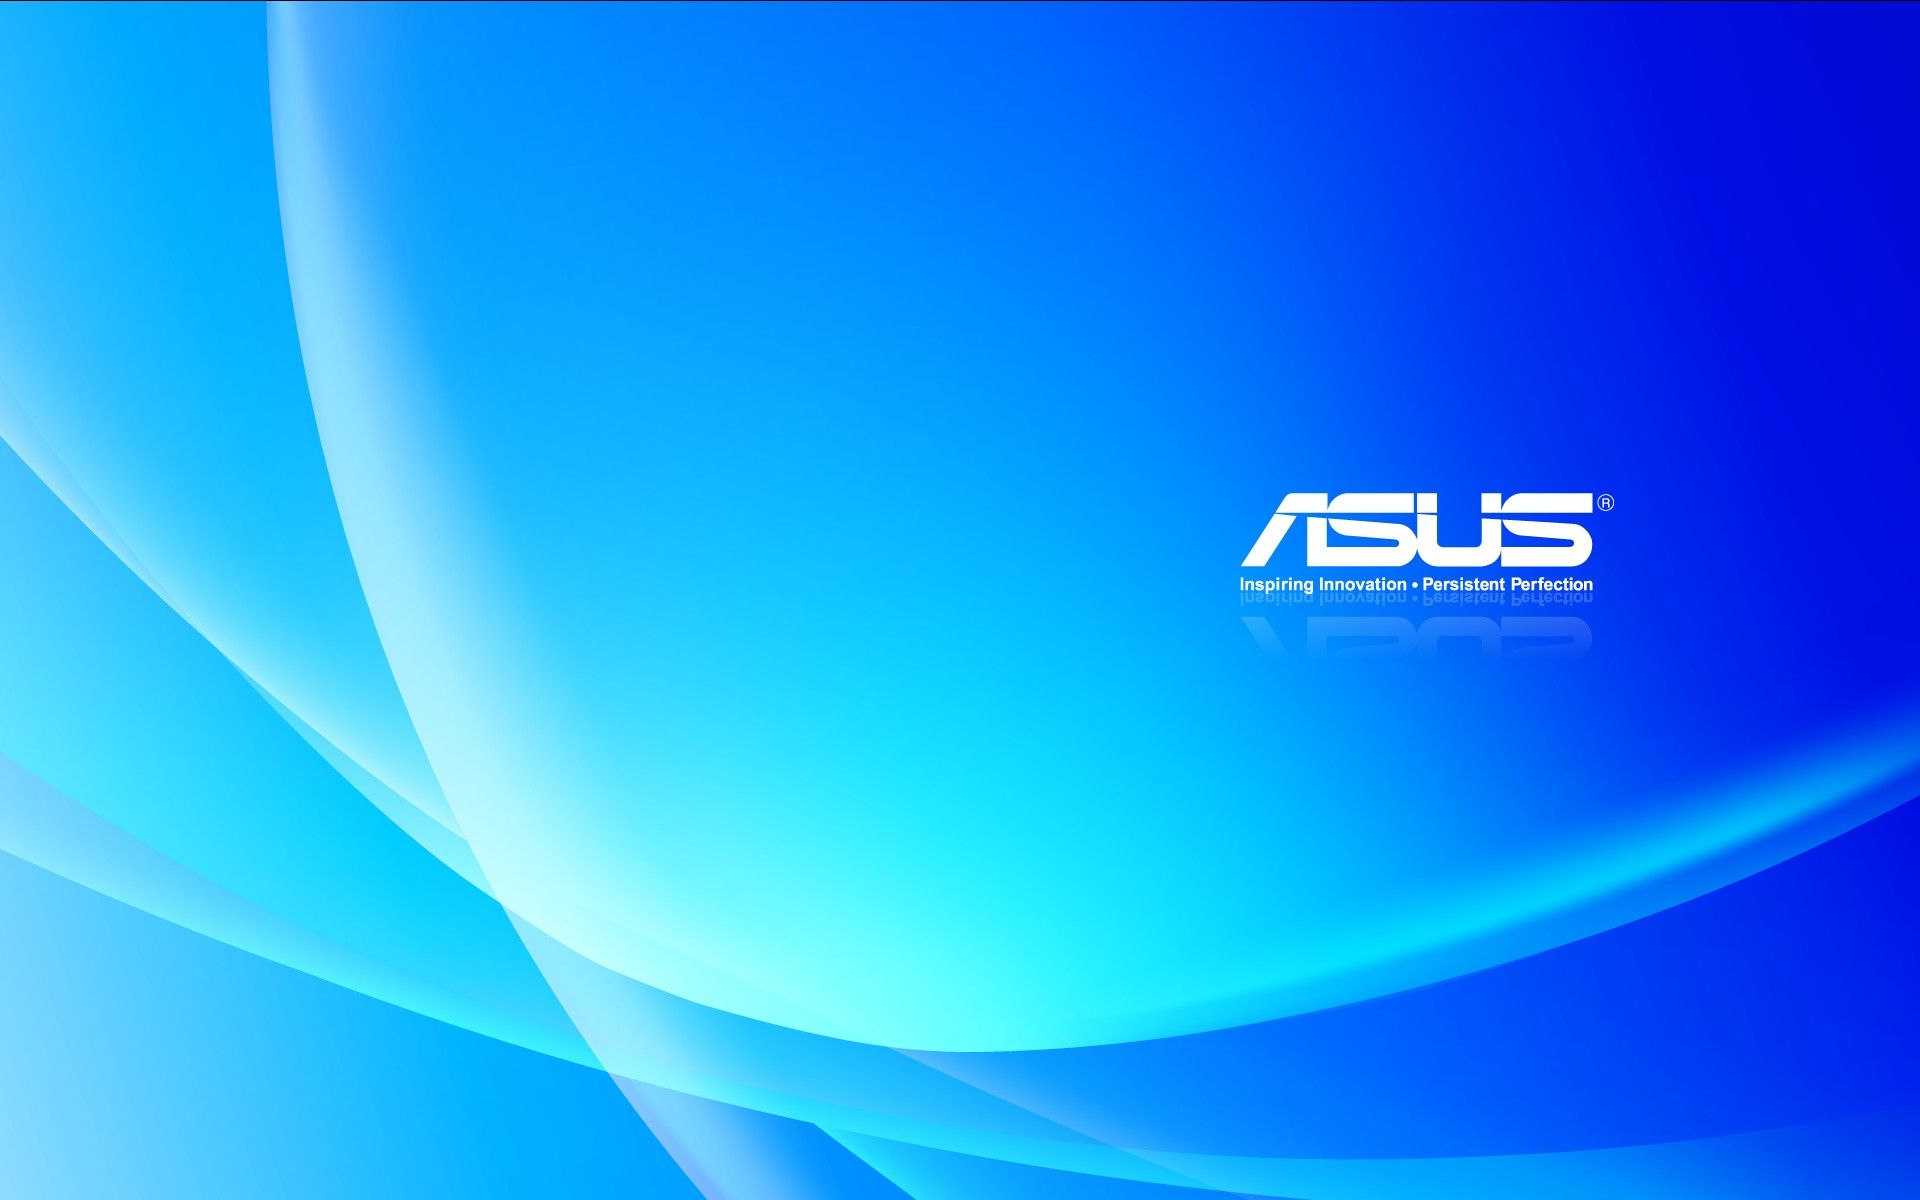 Asus Windows 8 Wallpaper Desktop Background - Scerbos com